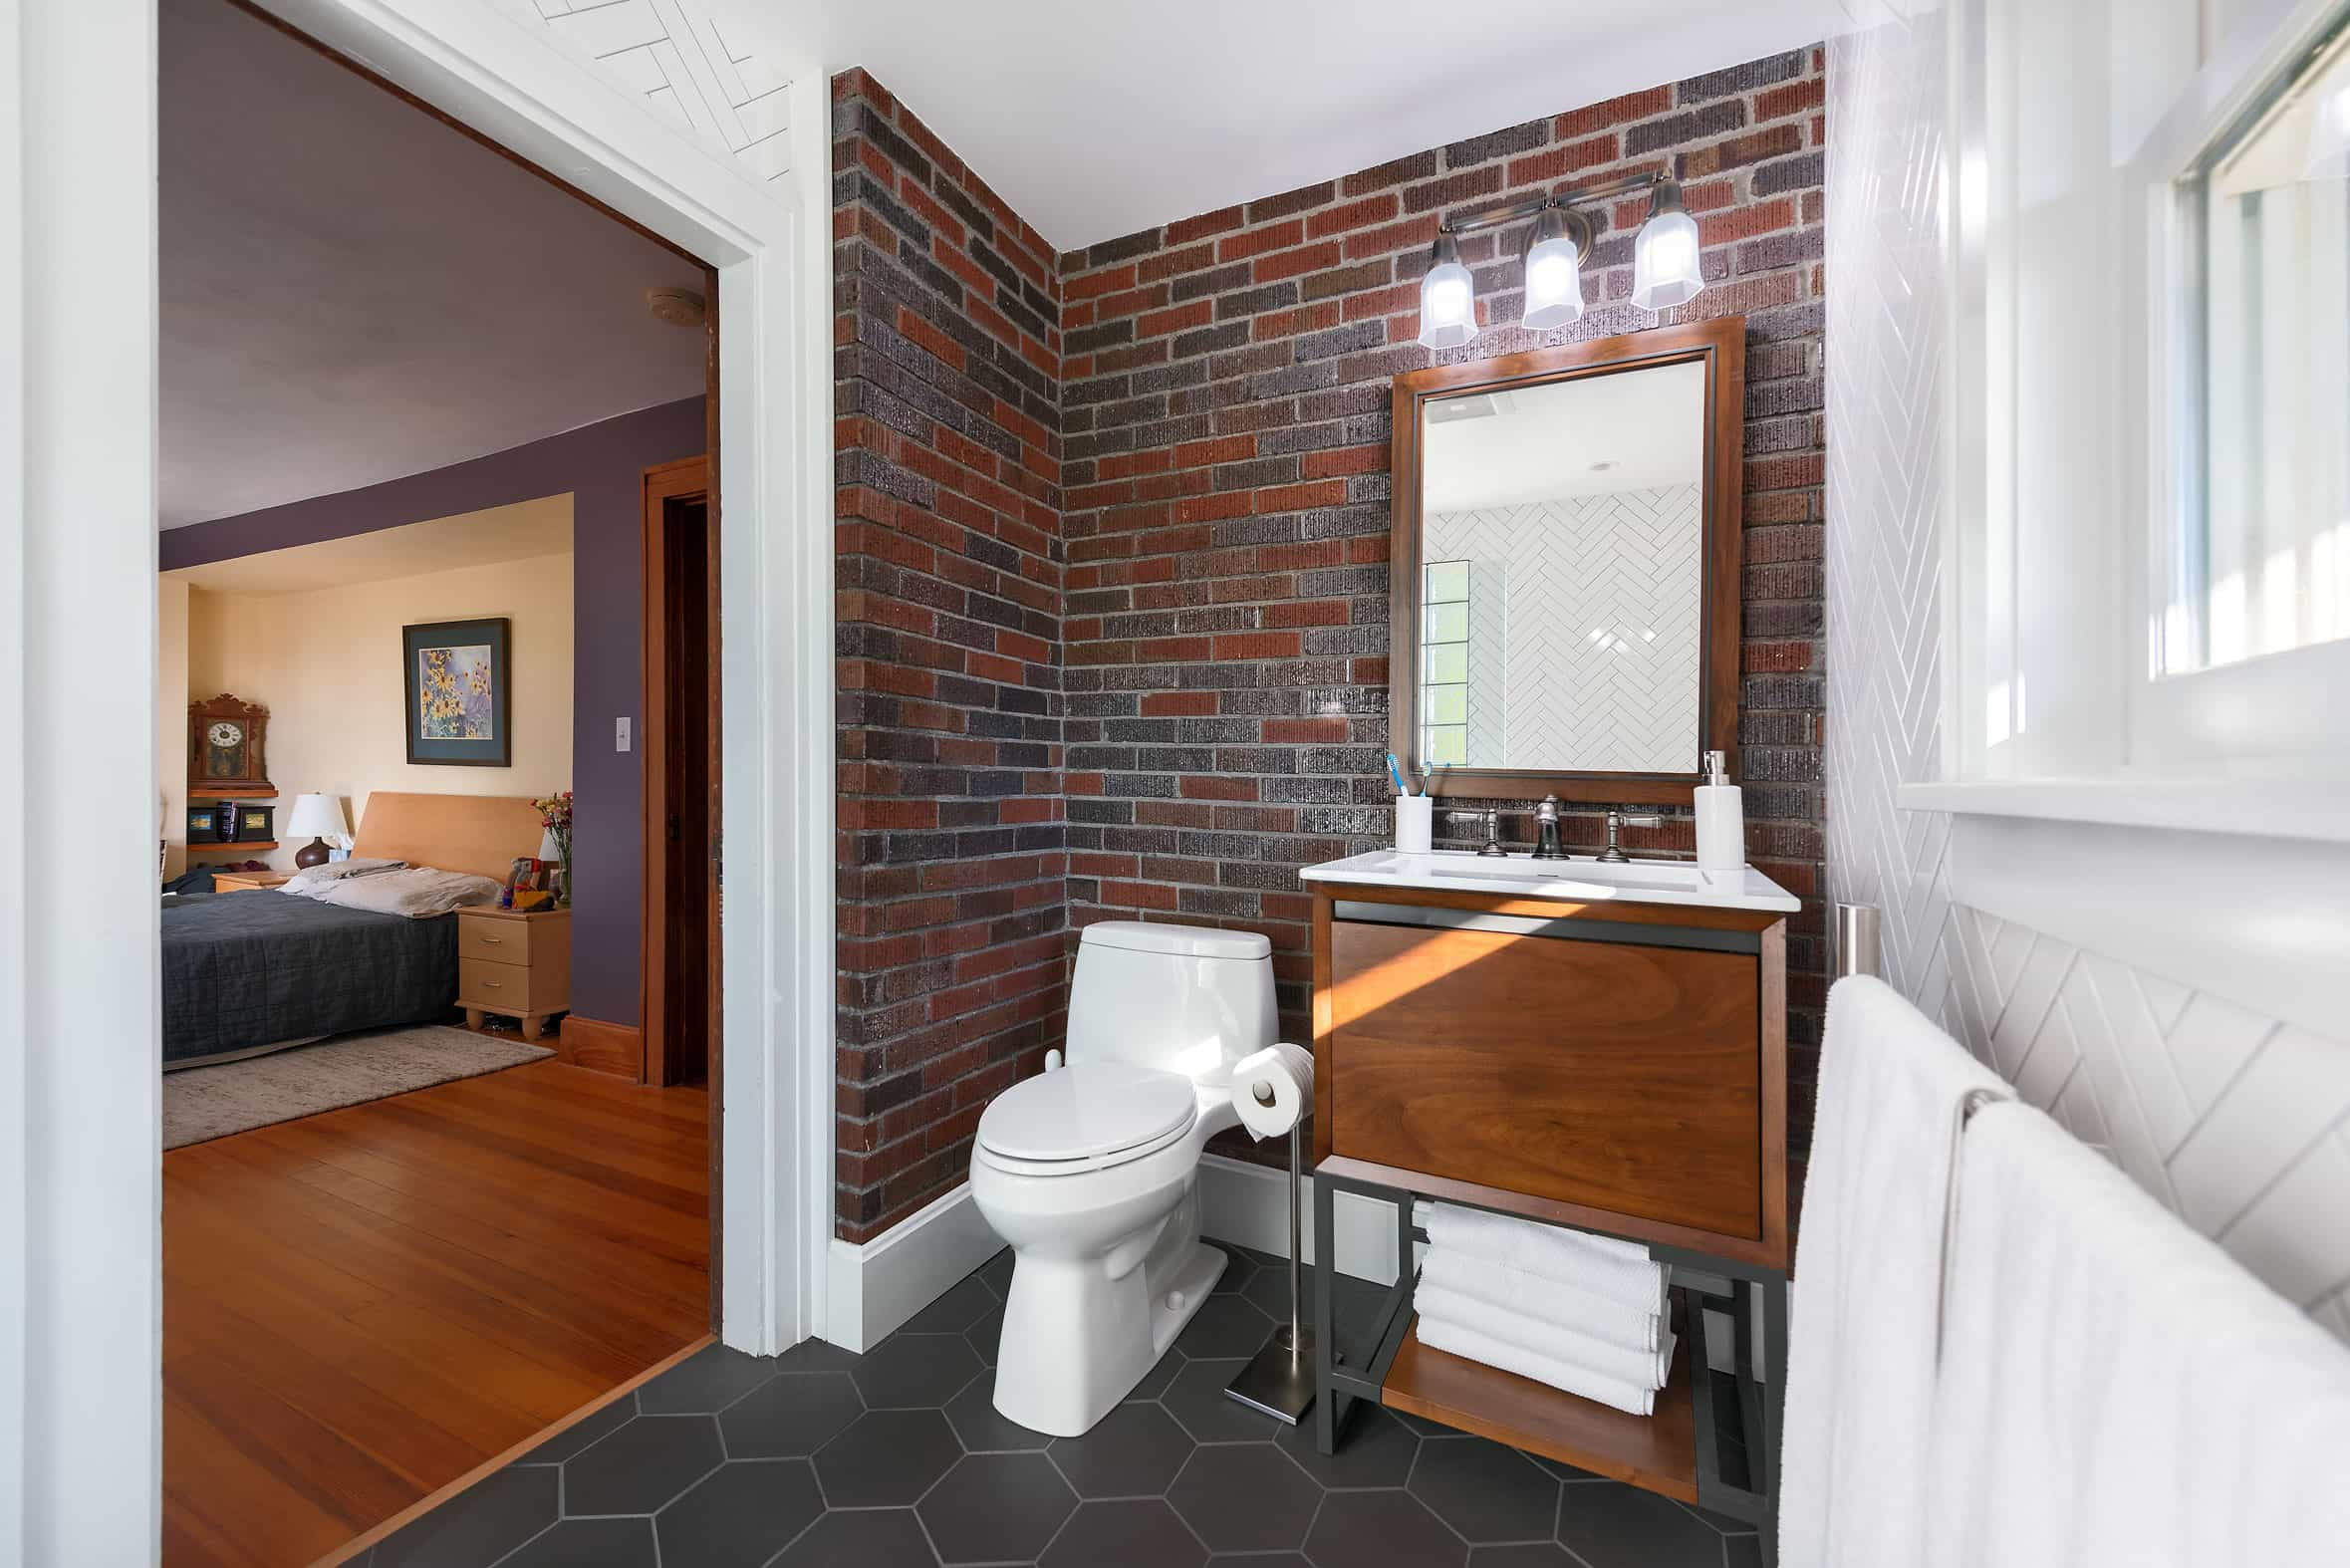 Bathroom Addition Chad's Design Build - Architectural Photography